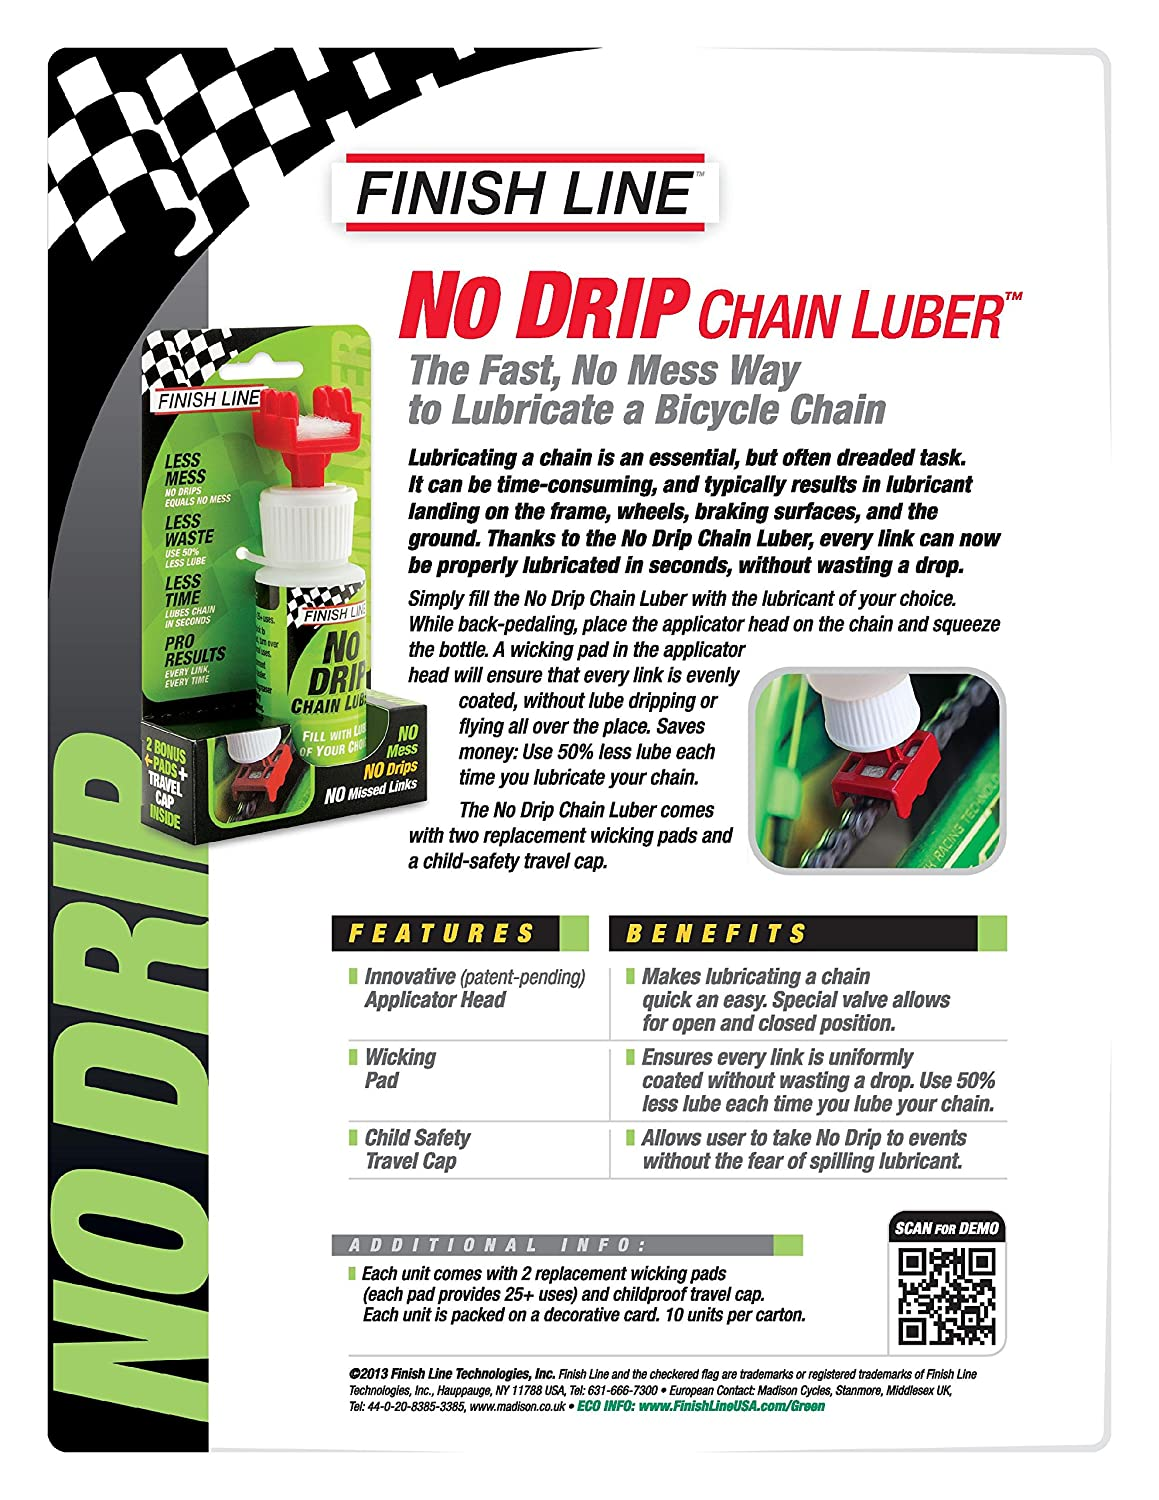 Finish Line Free Shipping Trick >> Finish Line No Drip Chain Luber